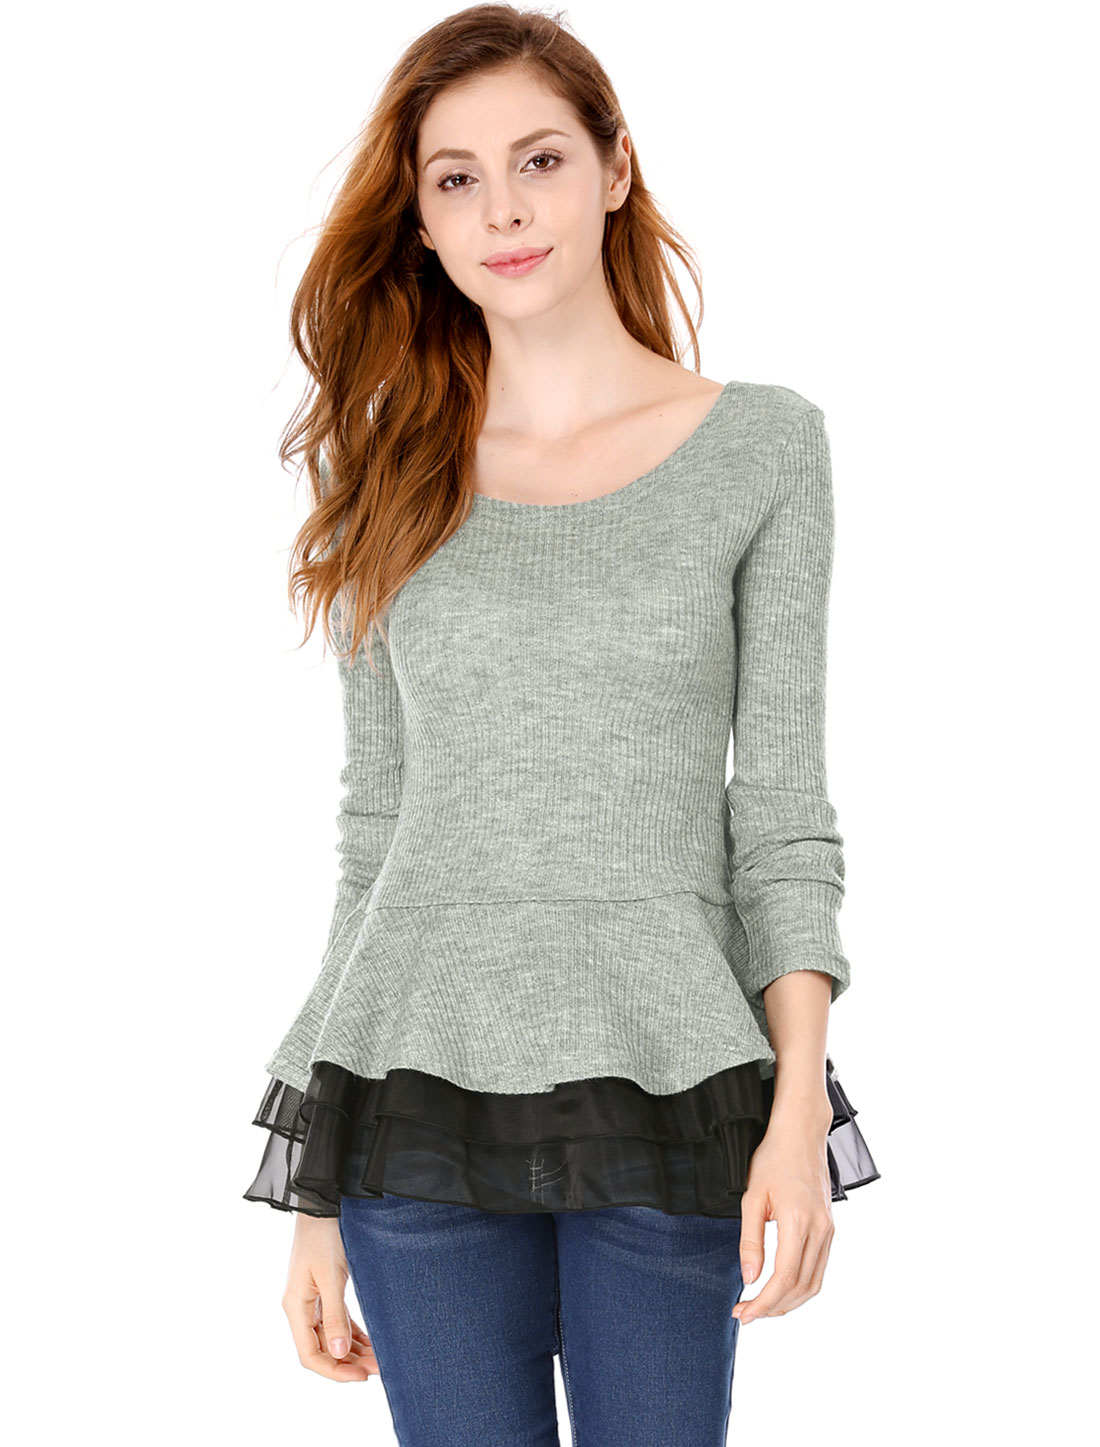 Ladies Light Gray Round Neck Long Sleeves Chiffon Panel Spring Peplum Top M